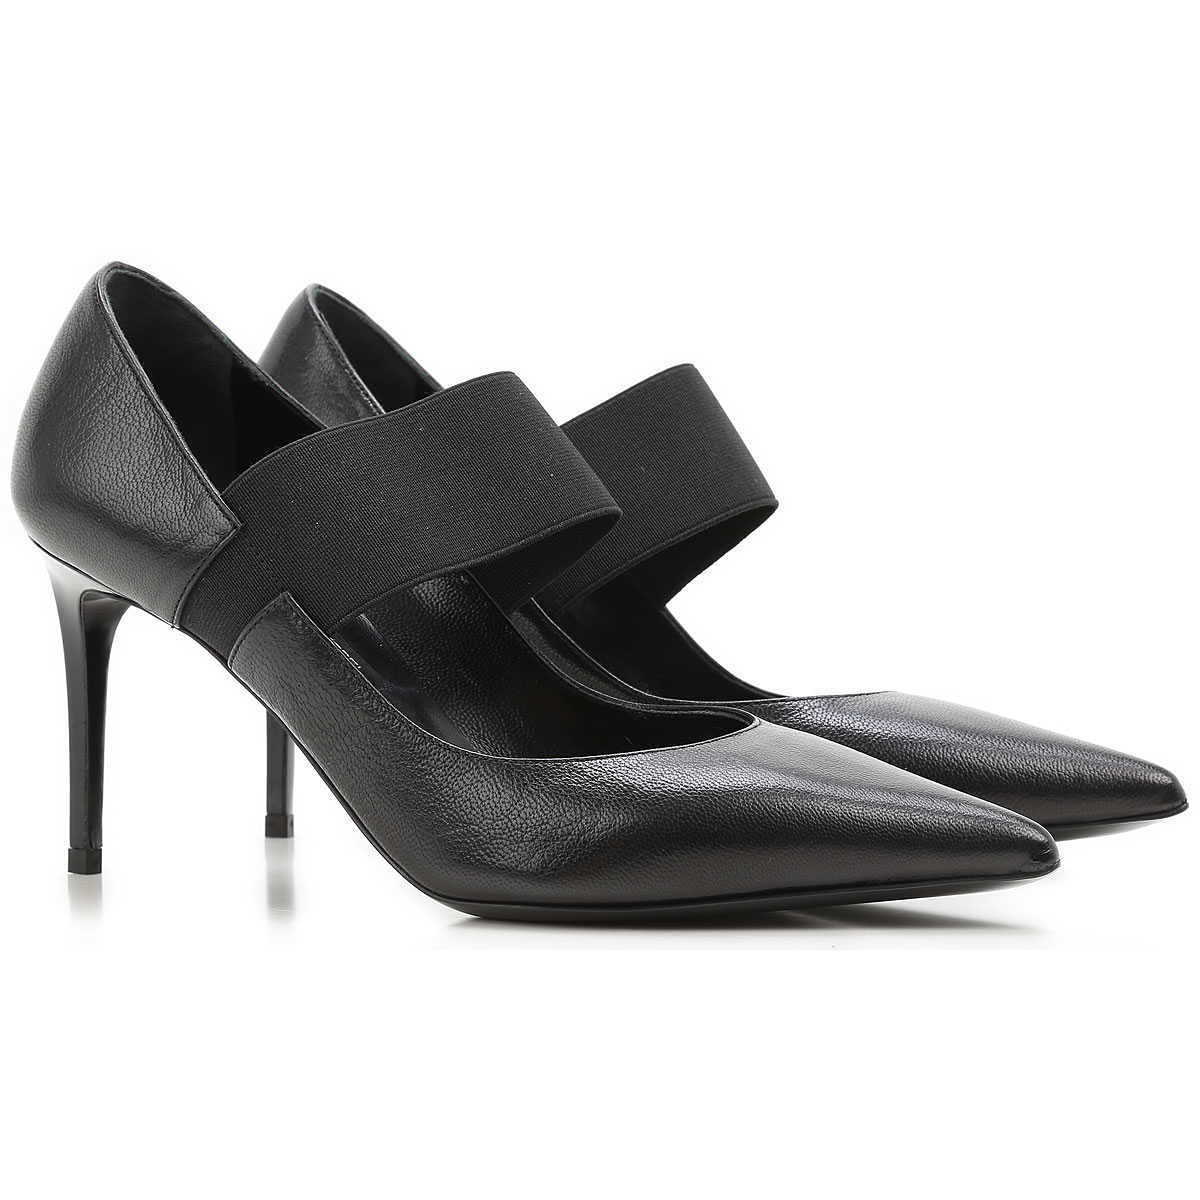 Philippe Model Pumps & High Heels for Women On Sale in Outlet Black DK - GOOFASH - Womens HIGH HEELS